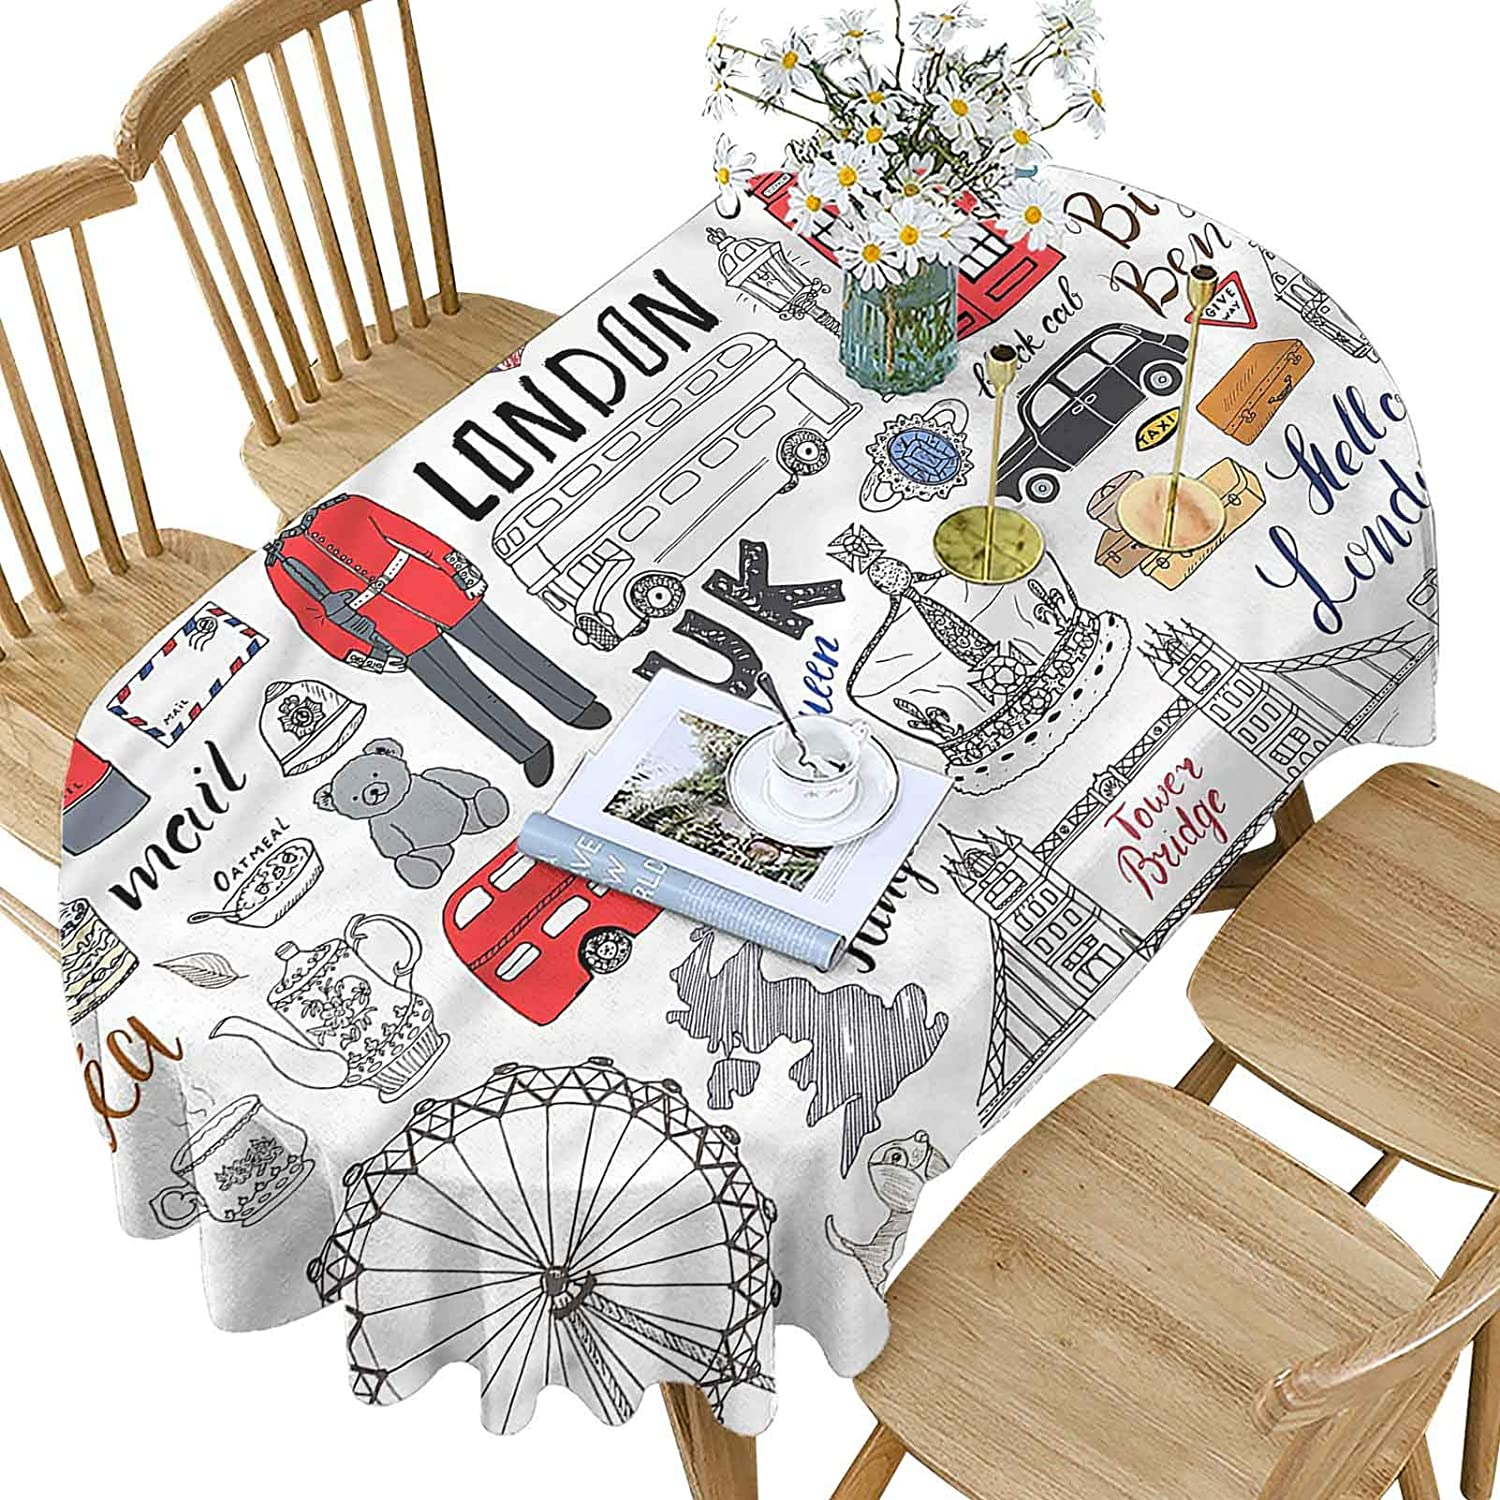 Online limited product Hiiiman Doodle Polyester Oval Tablecloth London Max 83% OFF Decker Bu Double